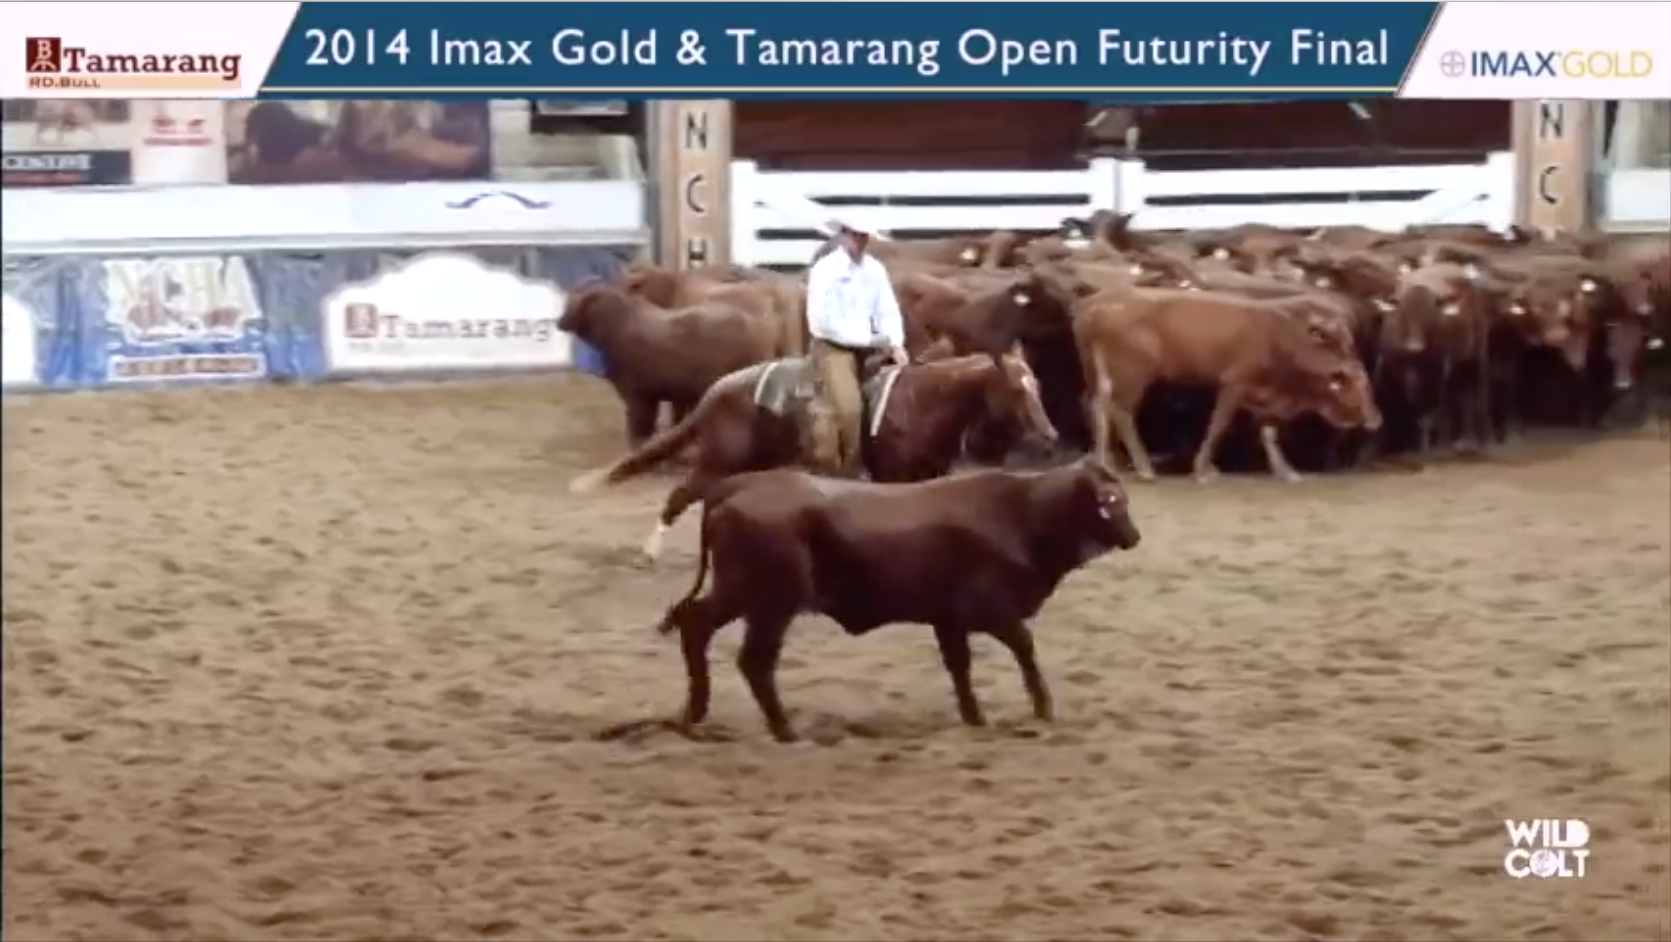 Winner of the 2014 NCHA Australia IMAX Gold Tamarang Futurity